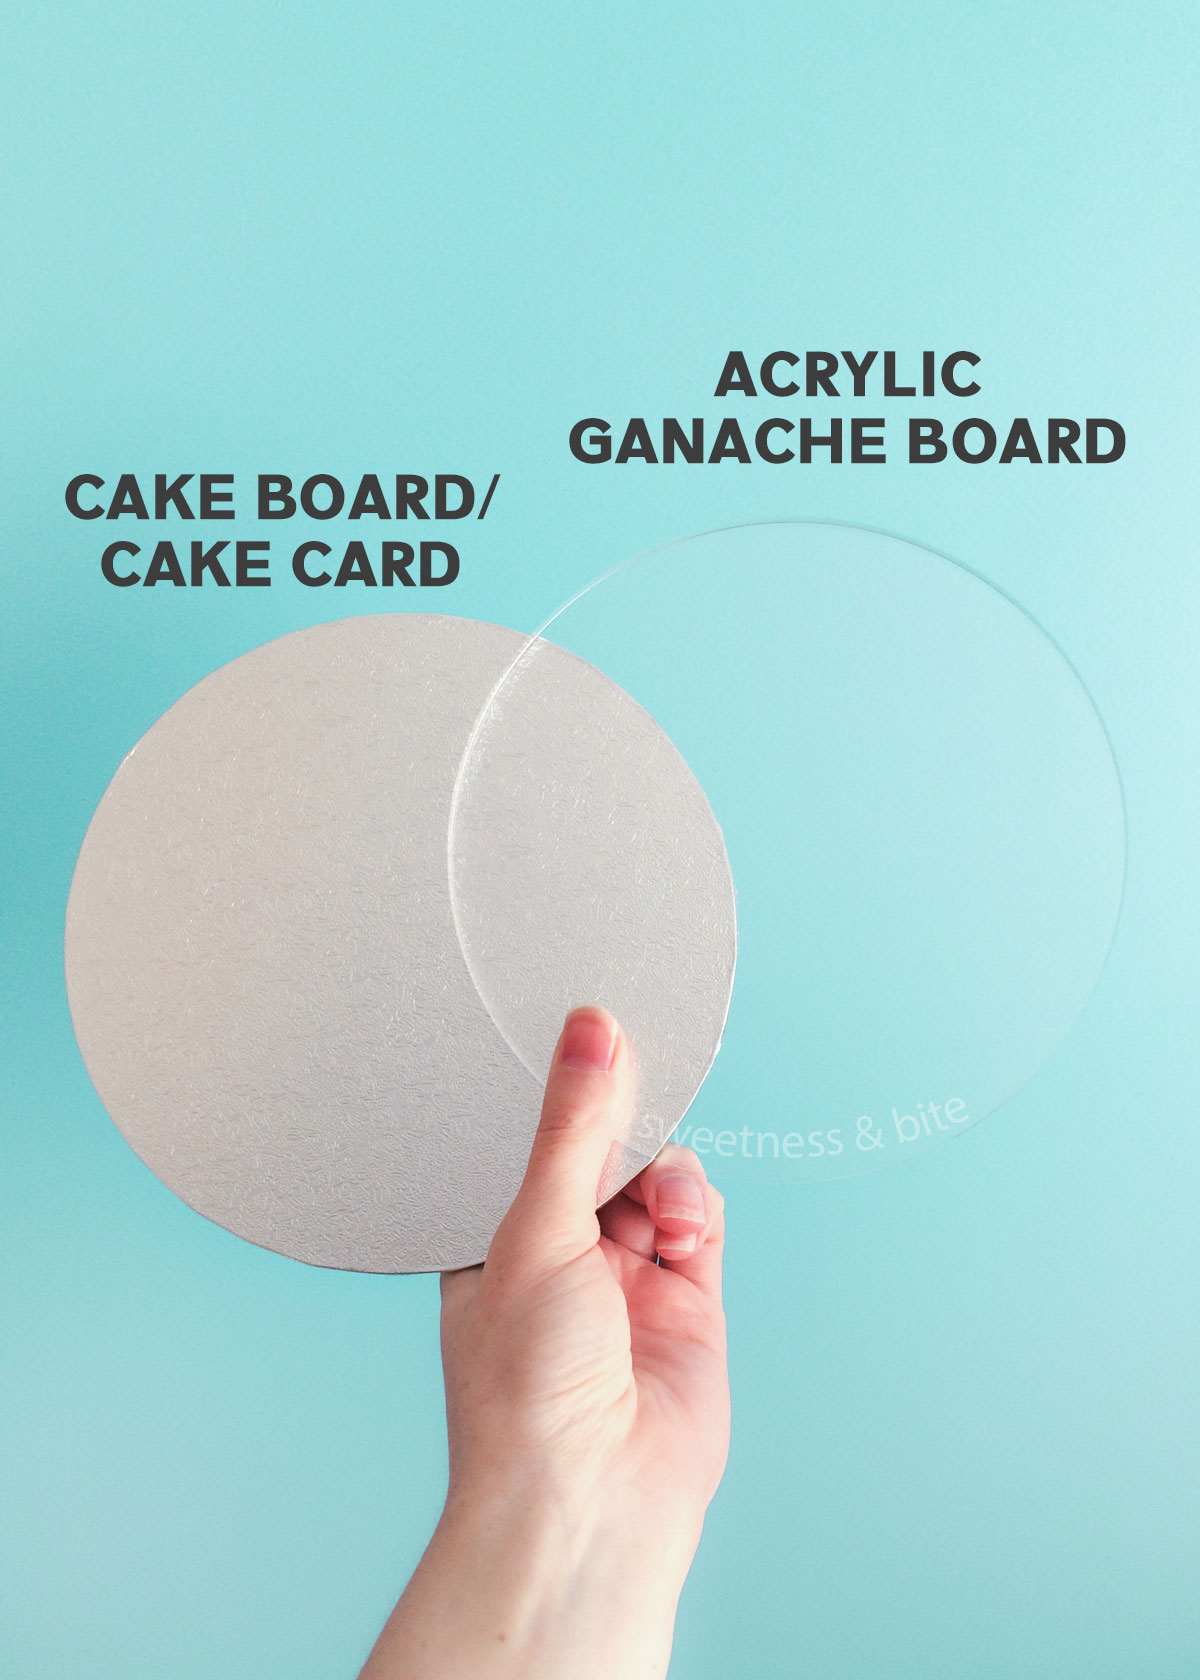 A hand holding a silver cake card and a clear acrylic ganache board the same size.